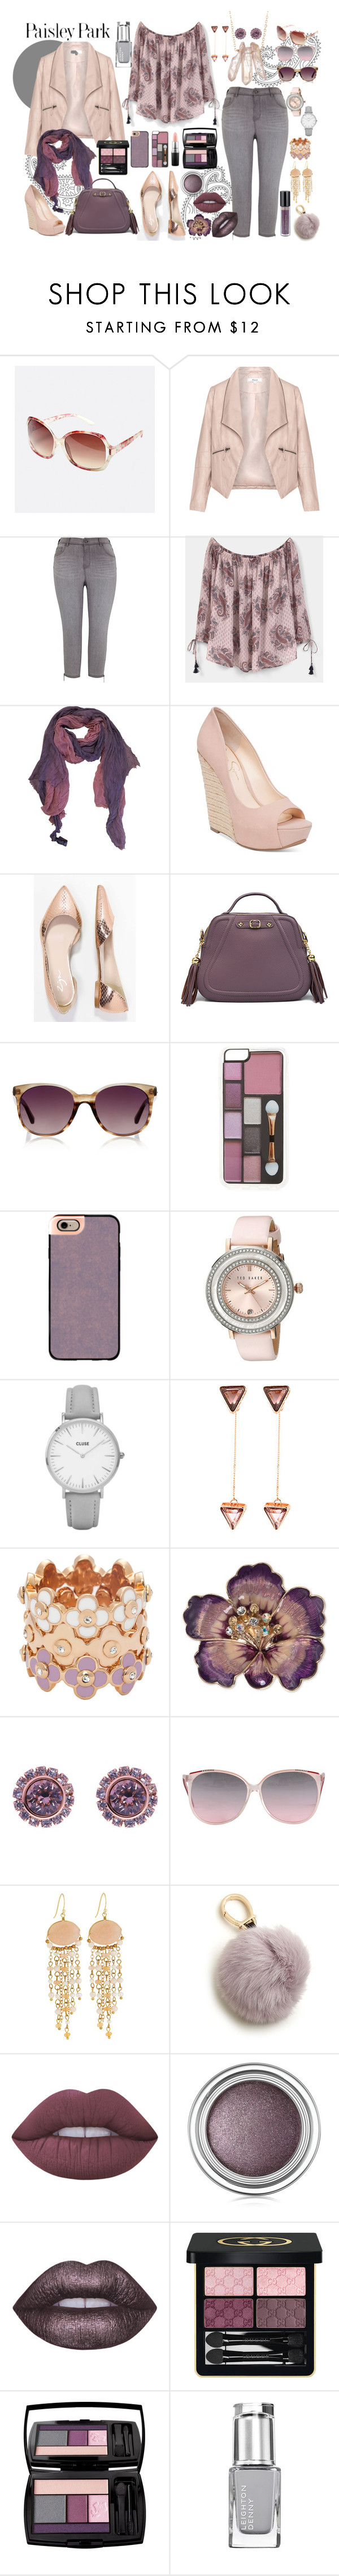 """""""Plus size fashion - Paisley Park"""" by angela-coyner on Polyvore featuring Avenue, Zizzi, Melissa McCarthy Seven7, MANGO, Zadig & Voltaire, Jessica Simpson, Zign, Linda Farrow Luxe, Zero Gravity and Casetify"""